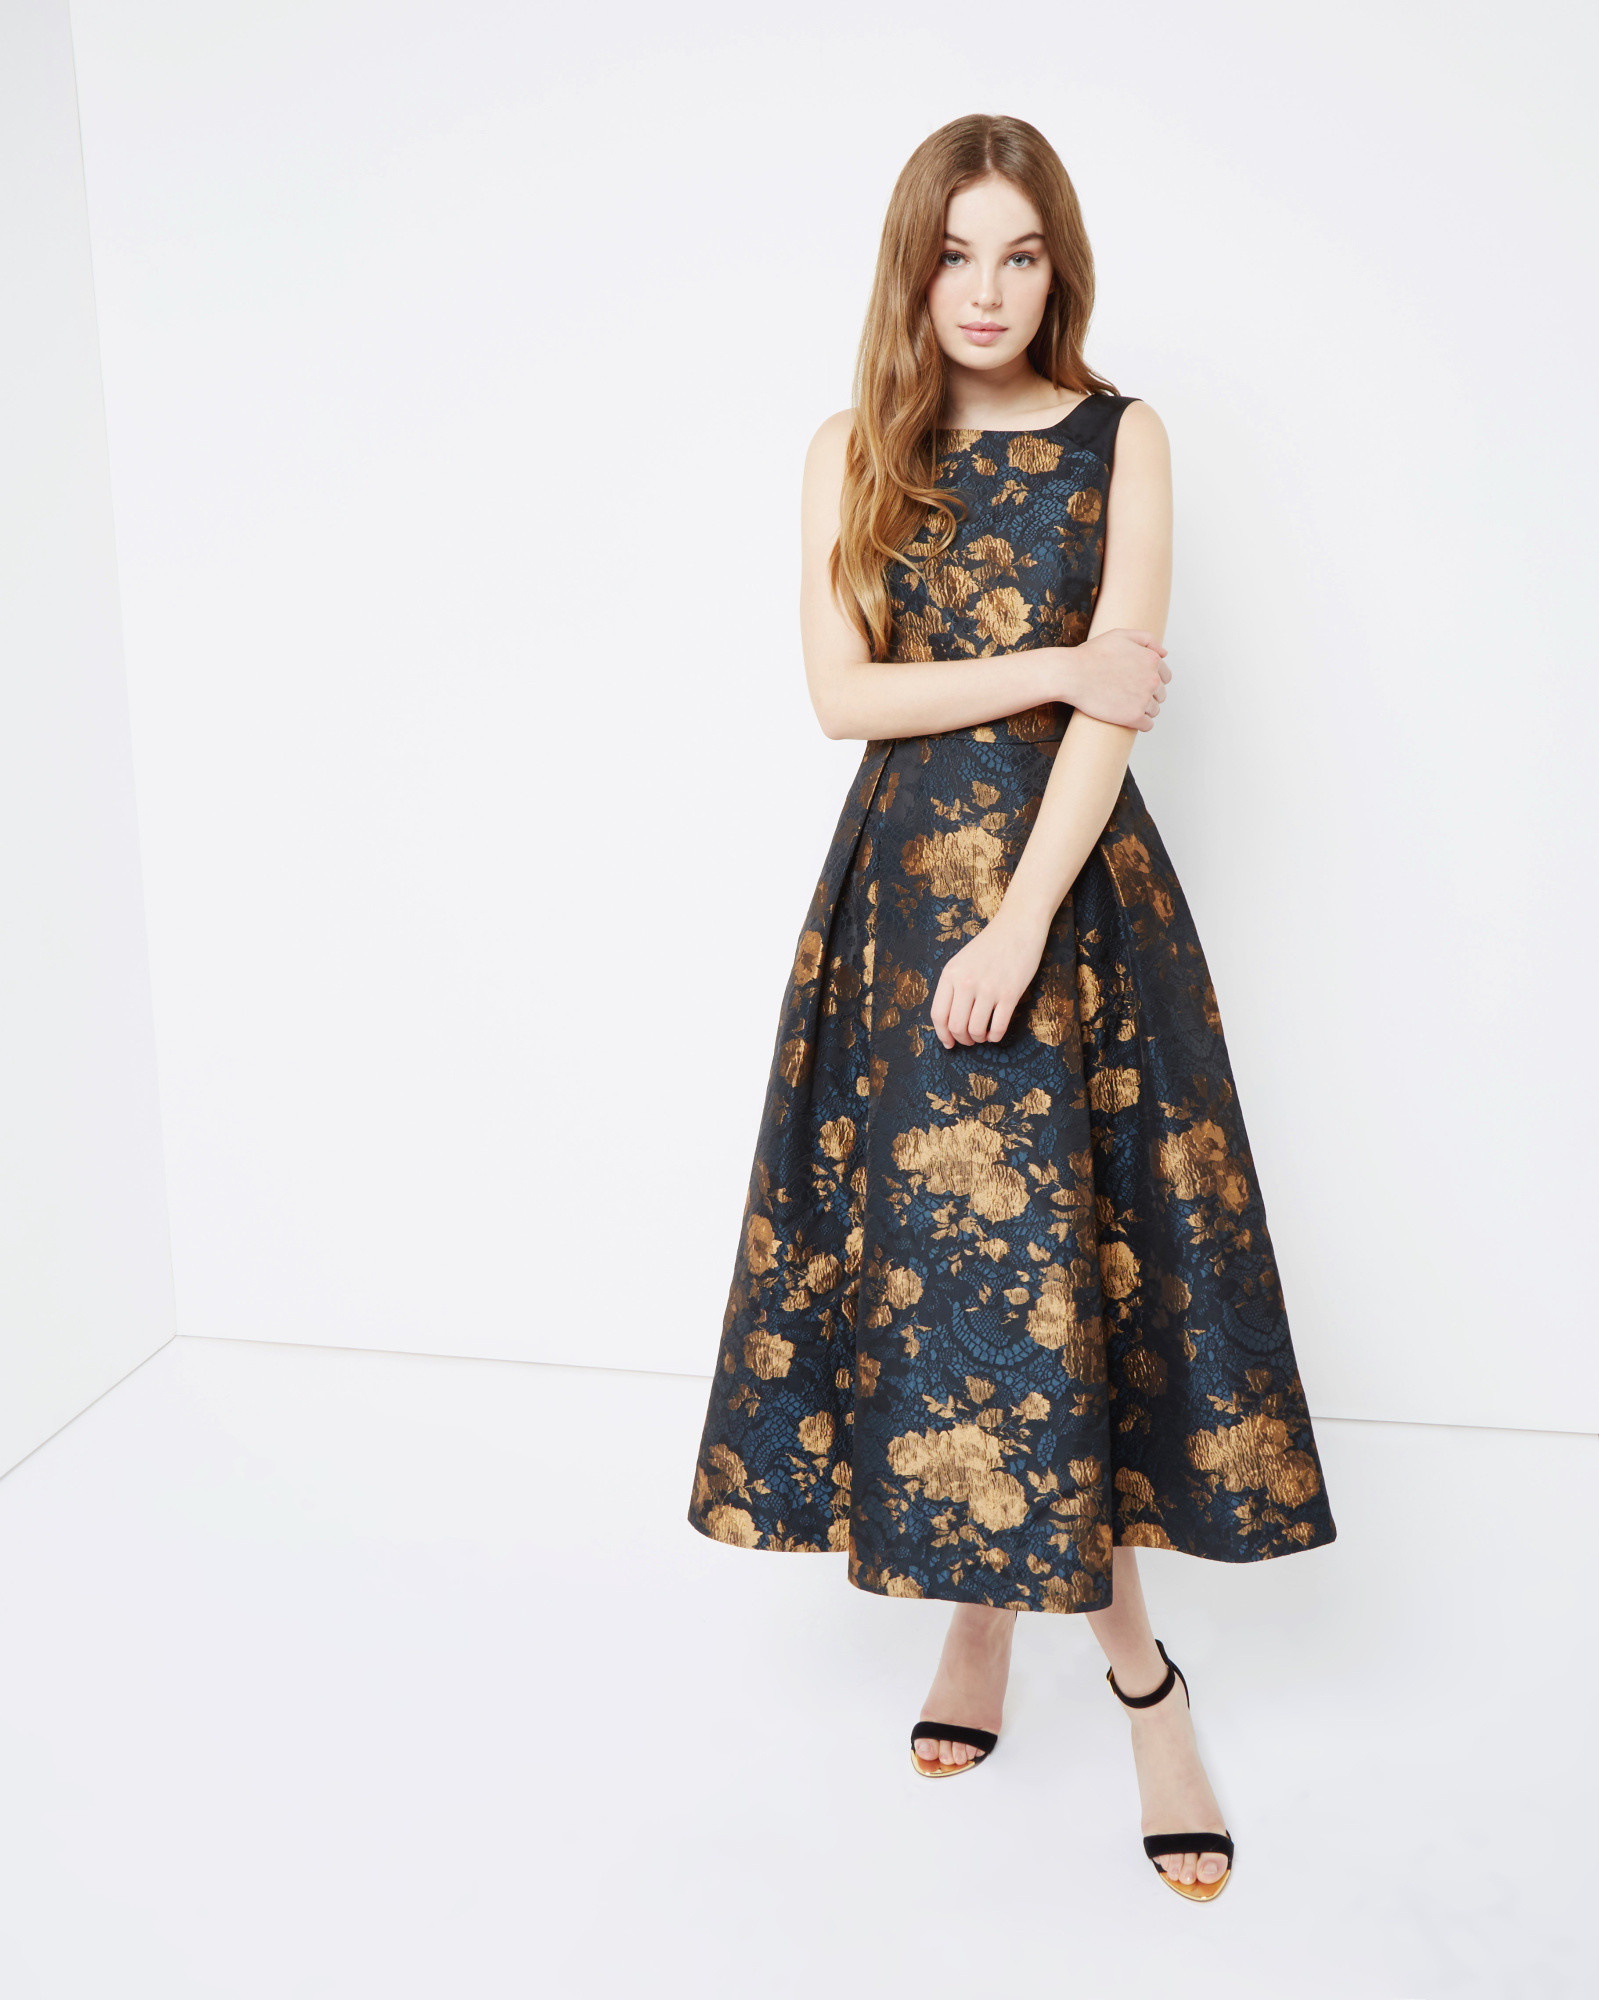 Ted baker clothes online